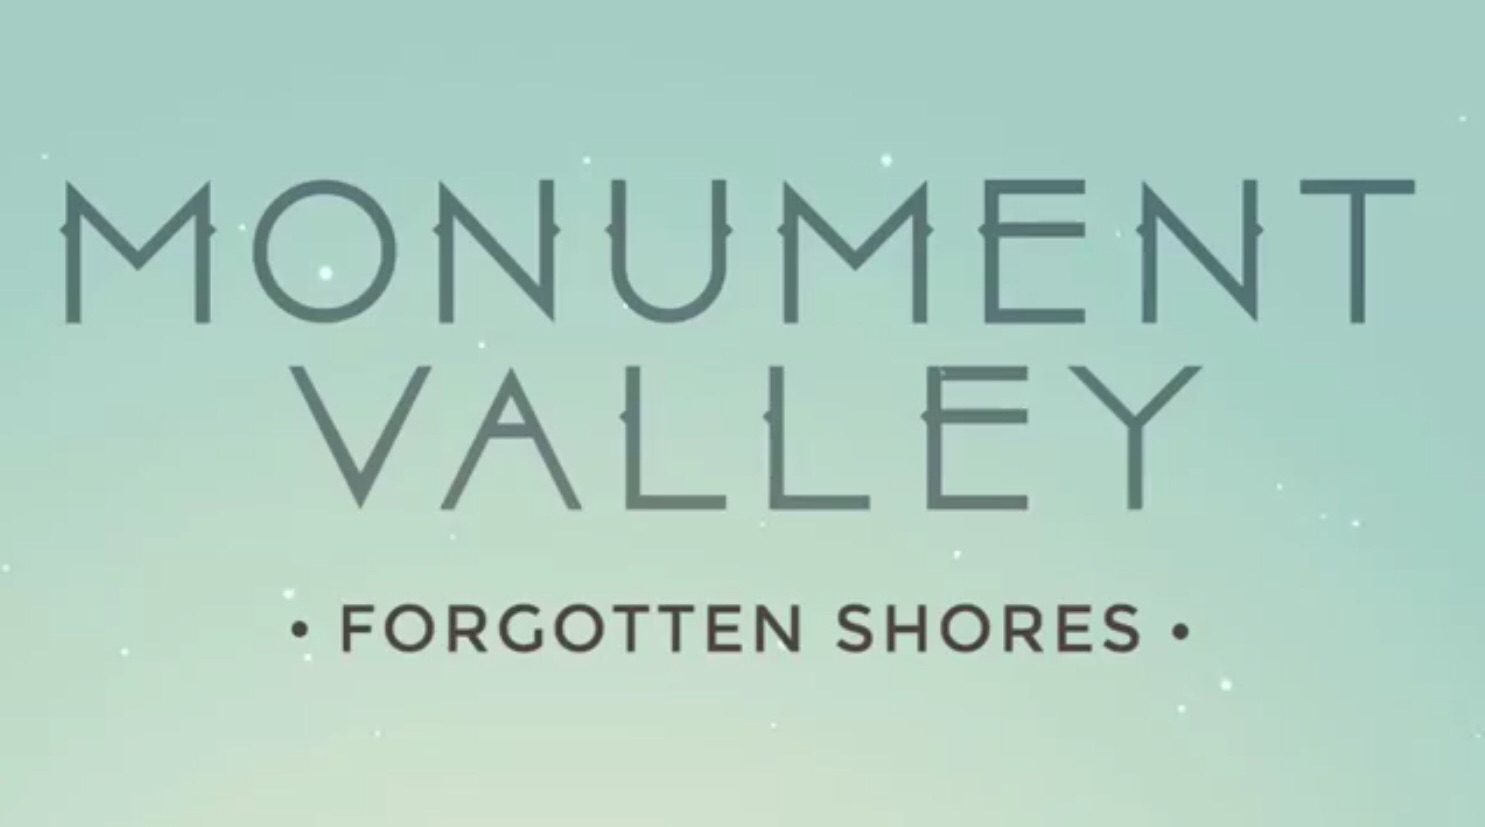 Monument Valley to gain new levels through upcoming 'Forgotten Shores' expansion